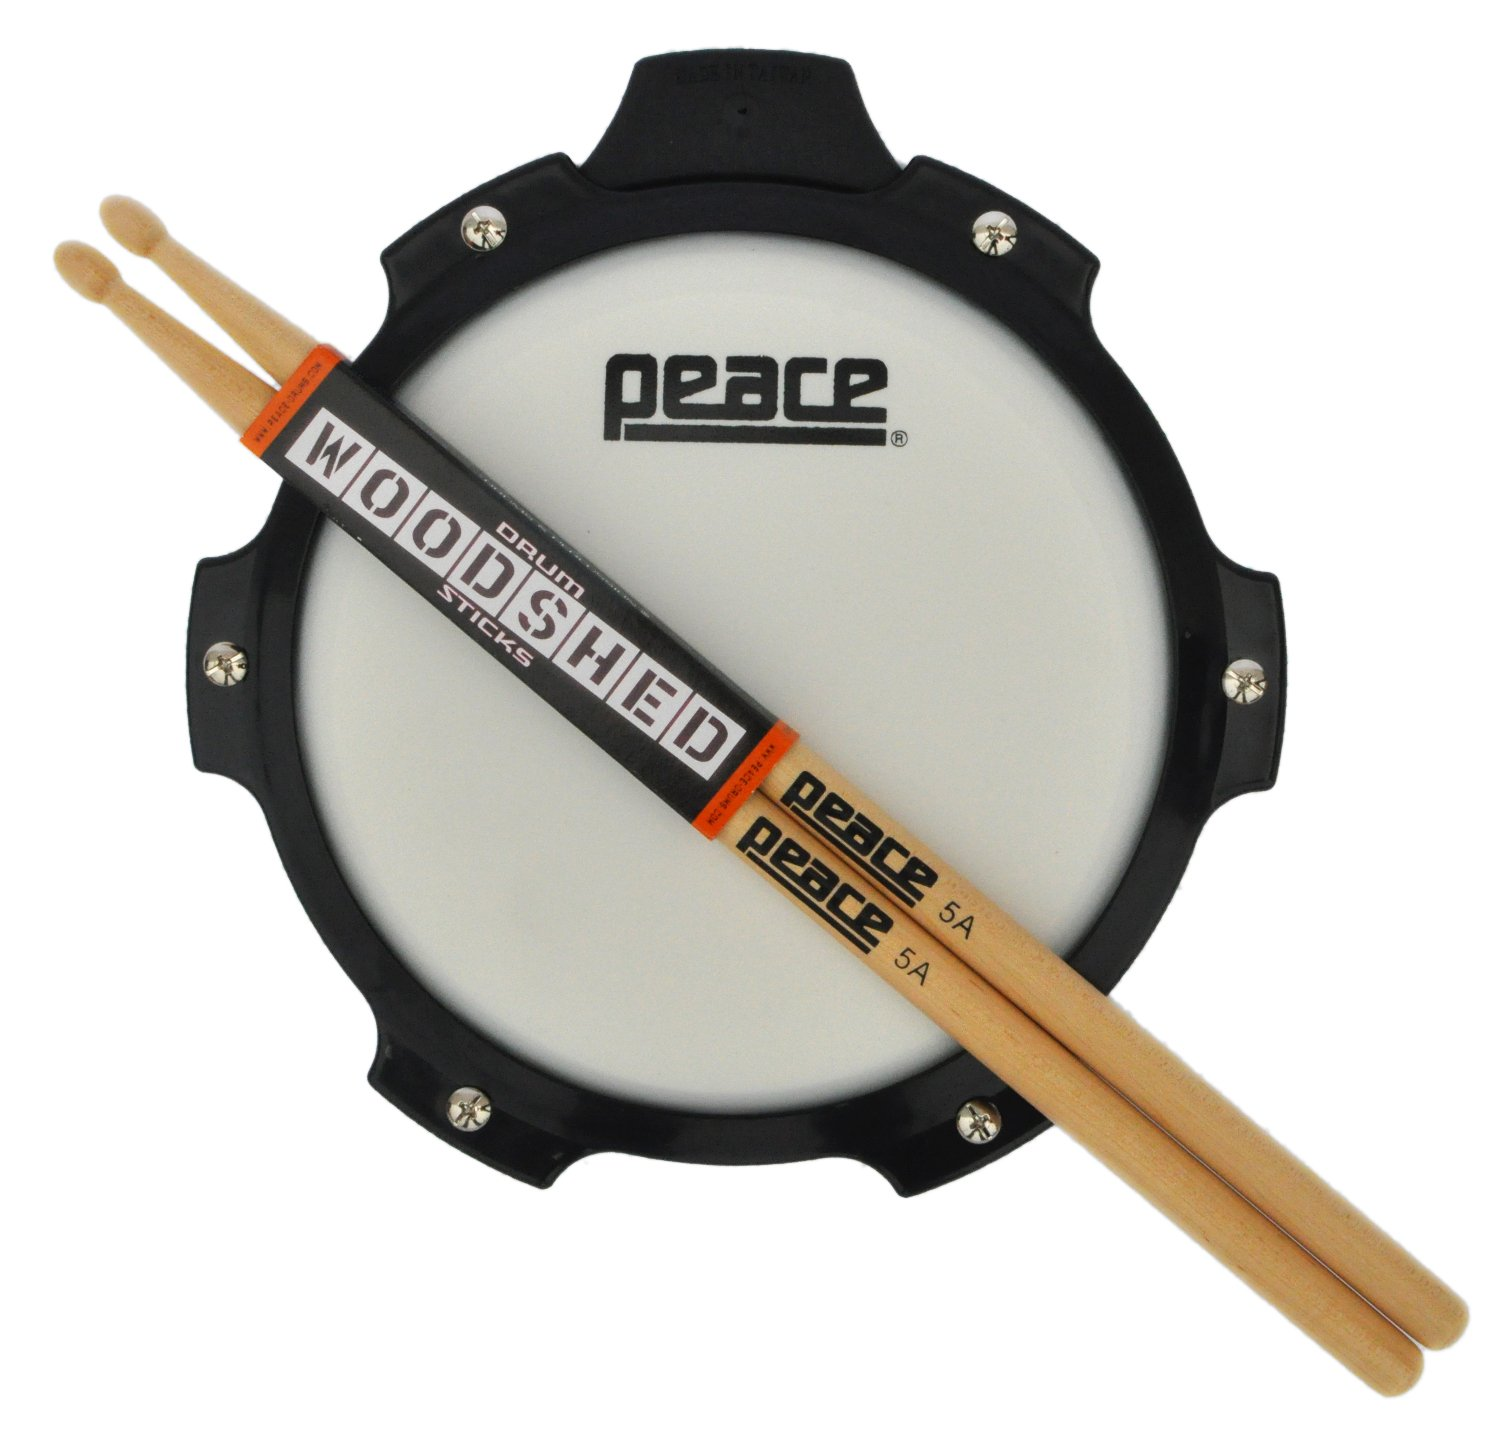 "Drum Pad With Sticks From Peace Drums. Snare Drum Practice Pad And Drumsticks Set. Drum Practice Pad Kits Come With 5a Drumsticks. 8"" Drum Pad"